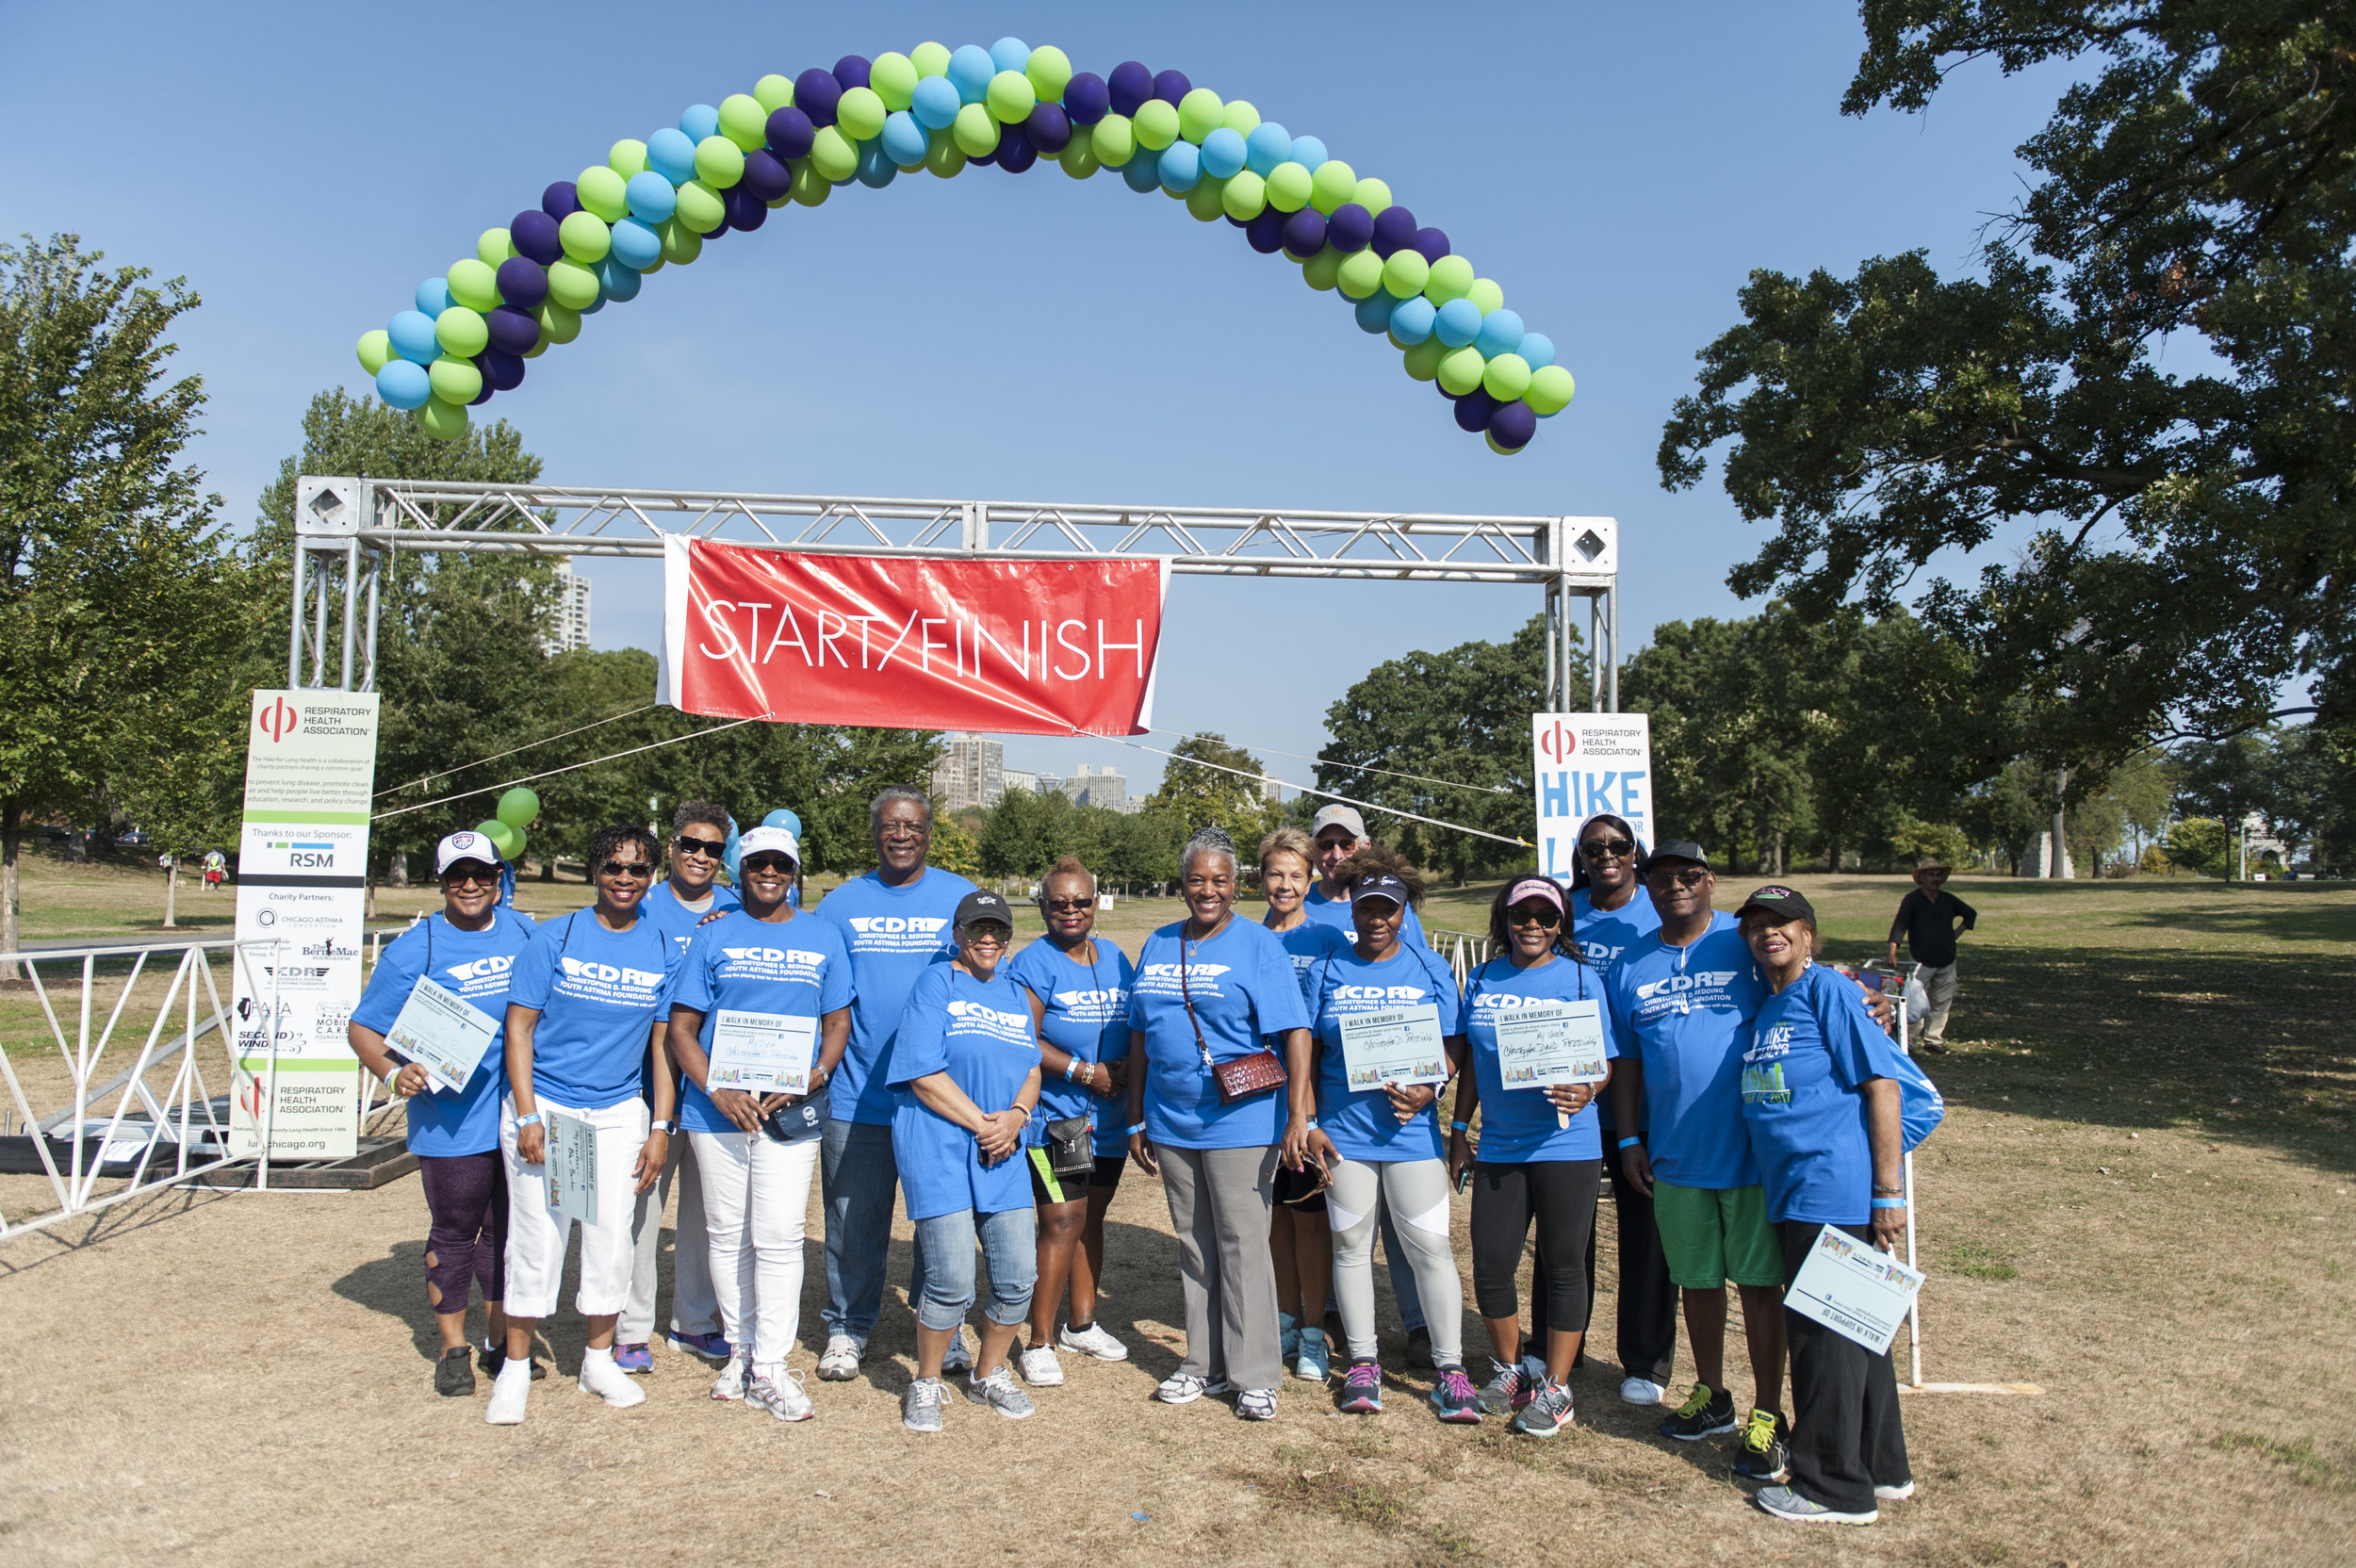 2017 Respiratory Health Association Hike for Lung Health